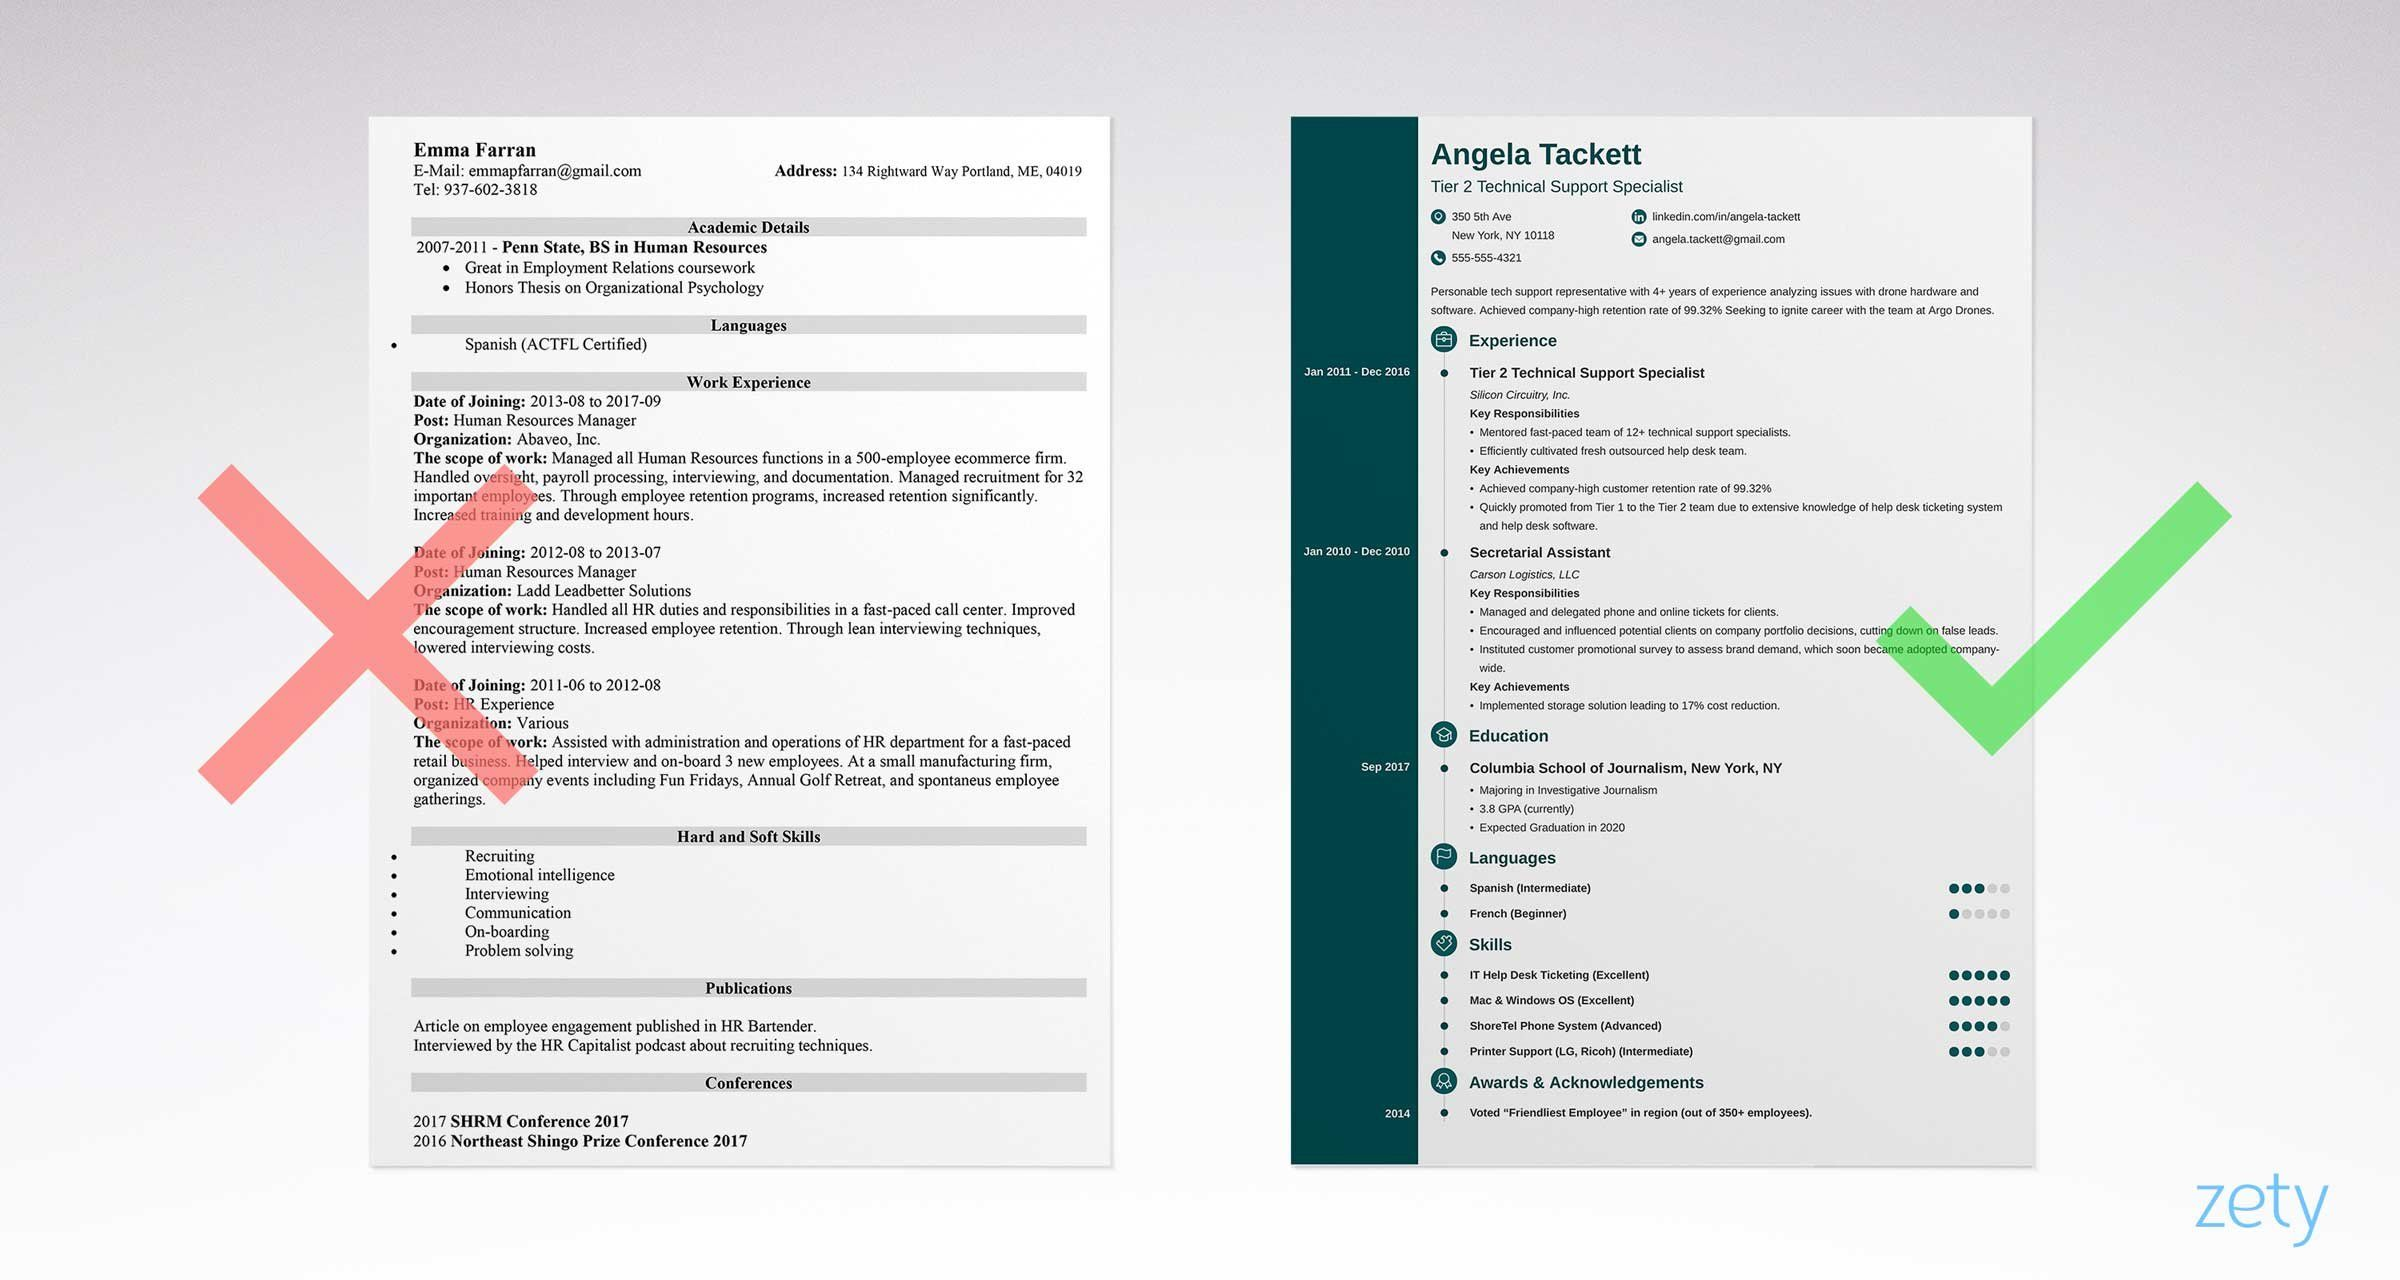 Cv Template Zety Simple resume template, Simple resume